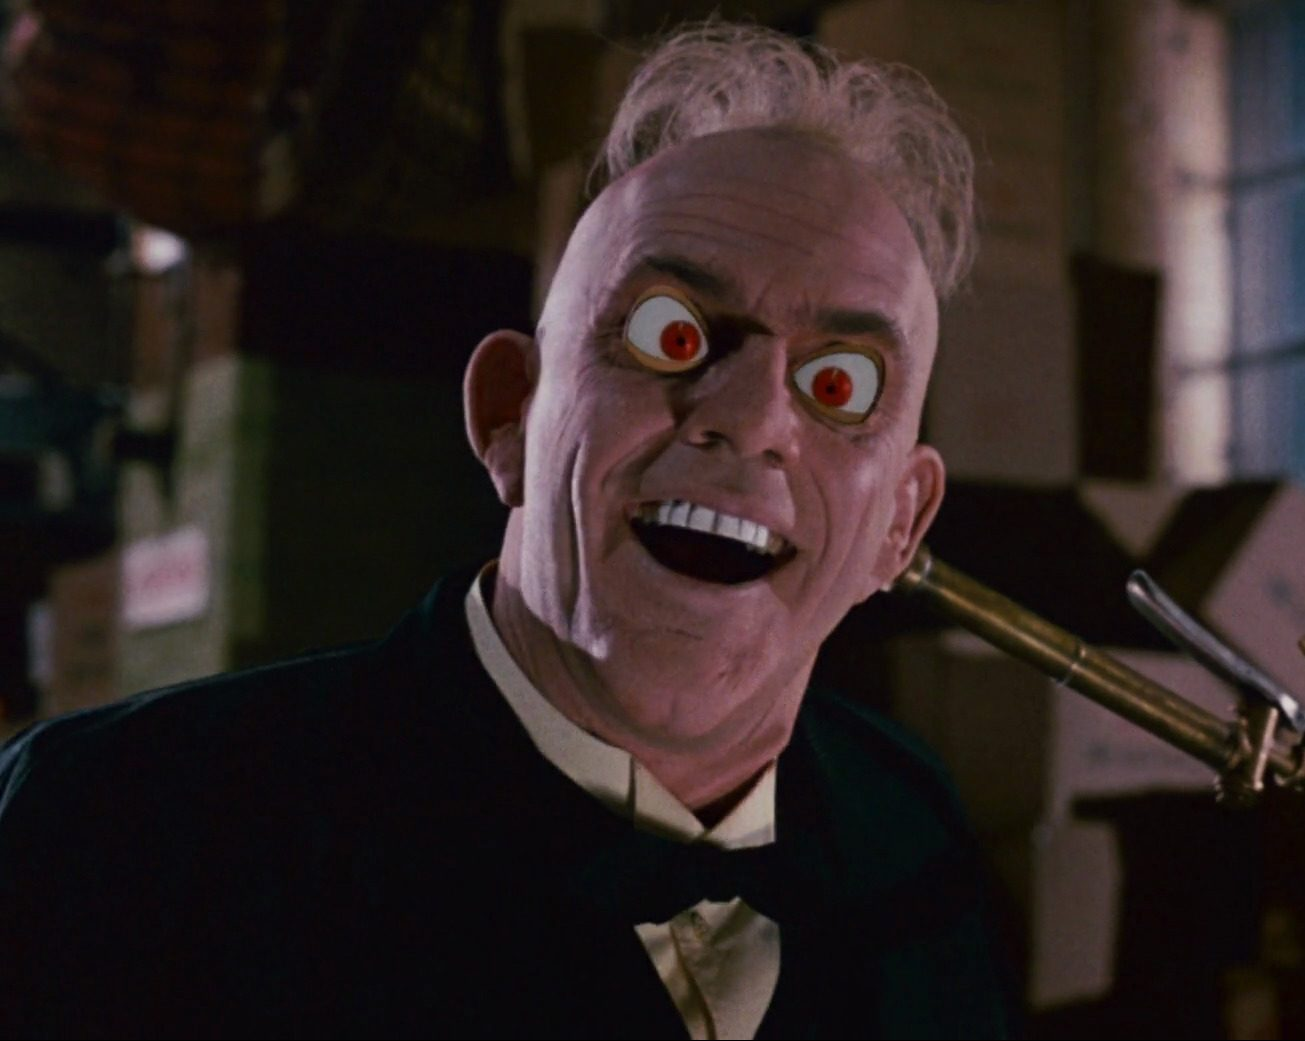 Who framed roger rabbit disneyscreencaps com 10706 2 e1605540089606 20 Characters That Scared The Life Out Of Us As Children